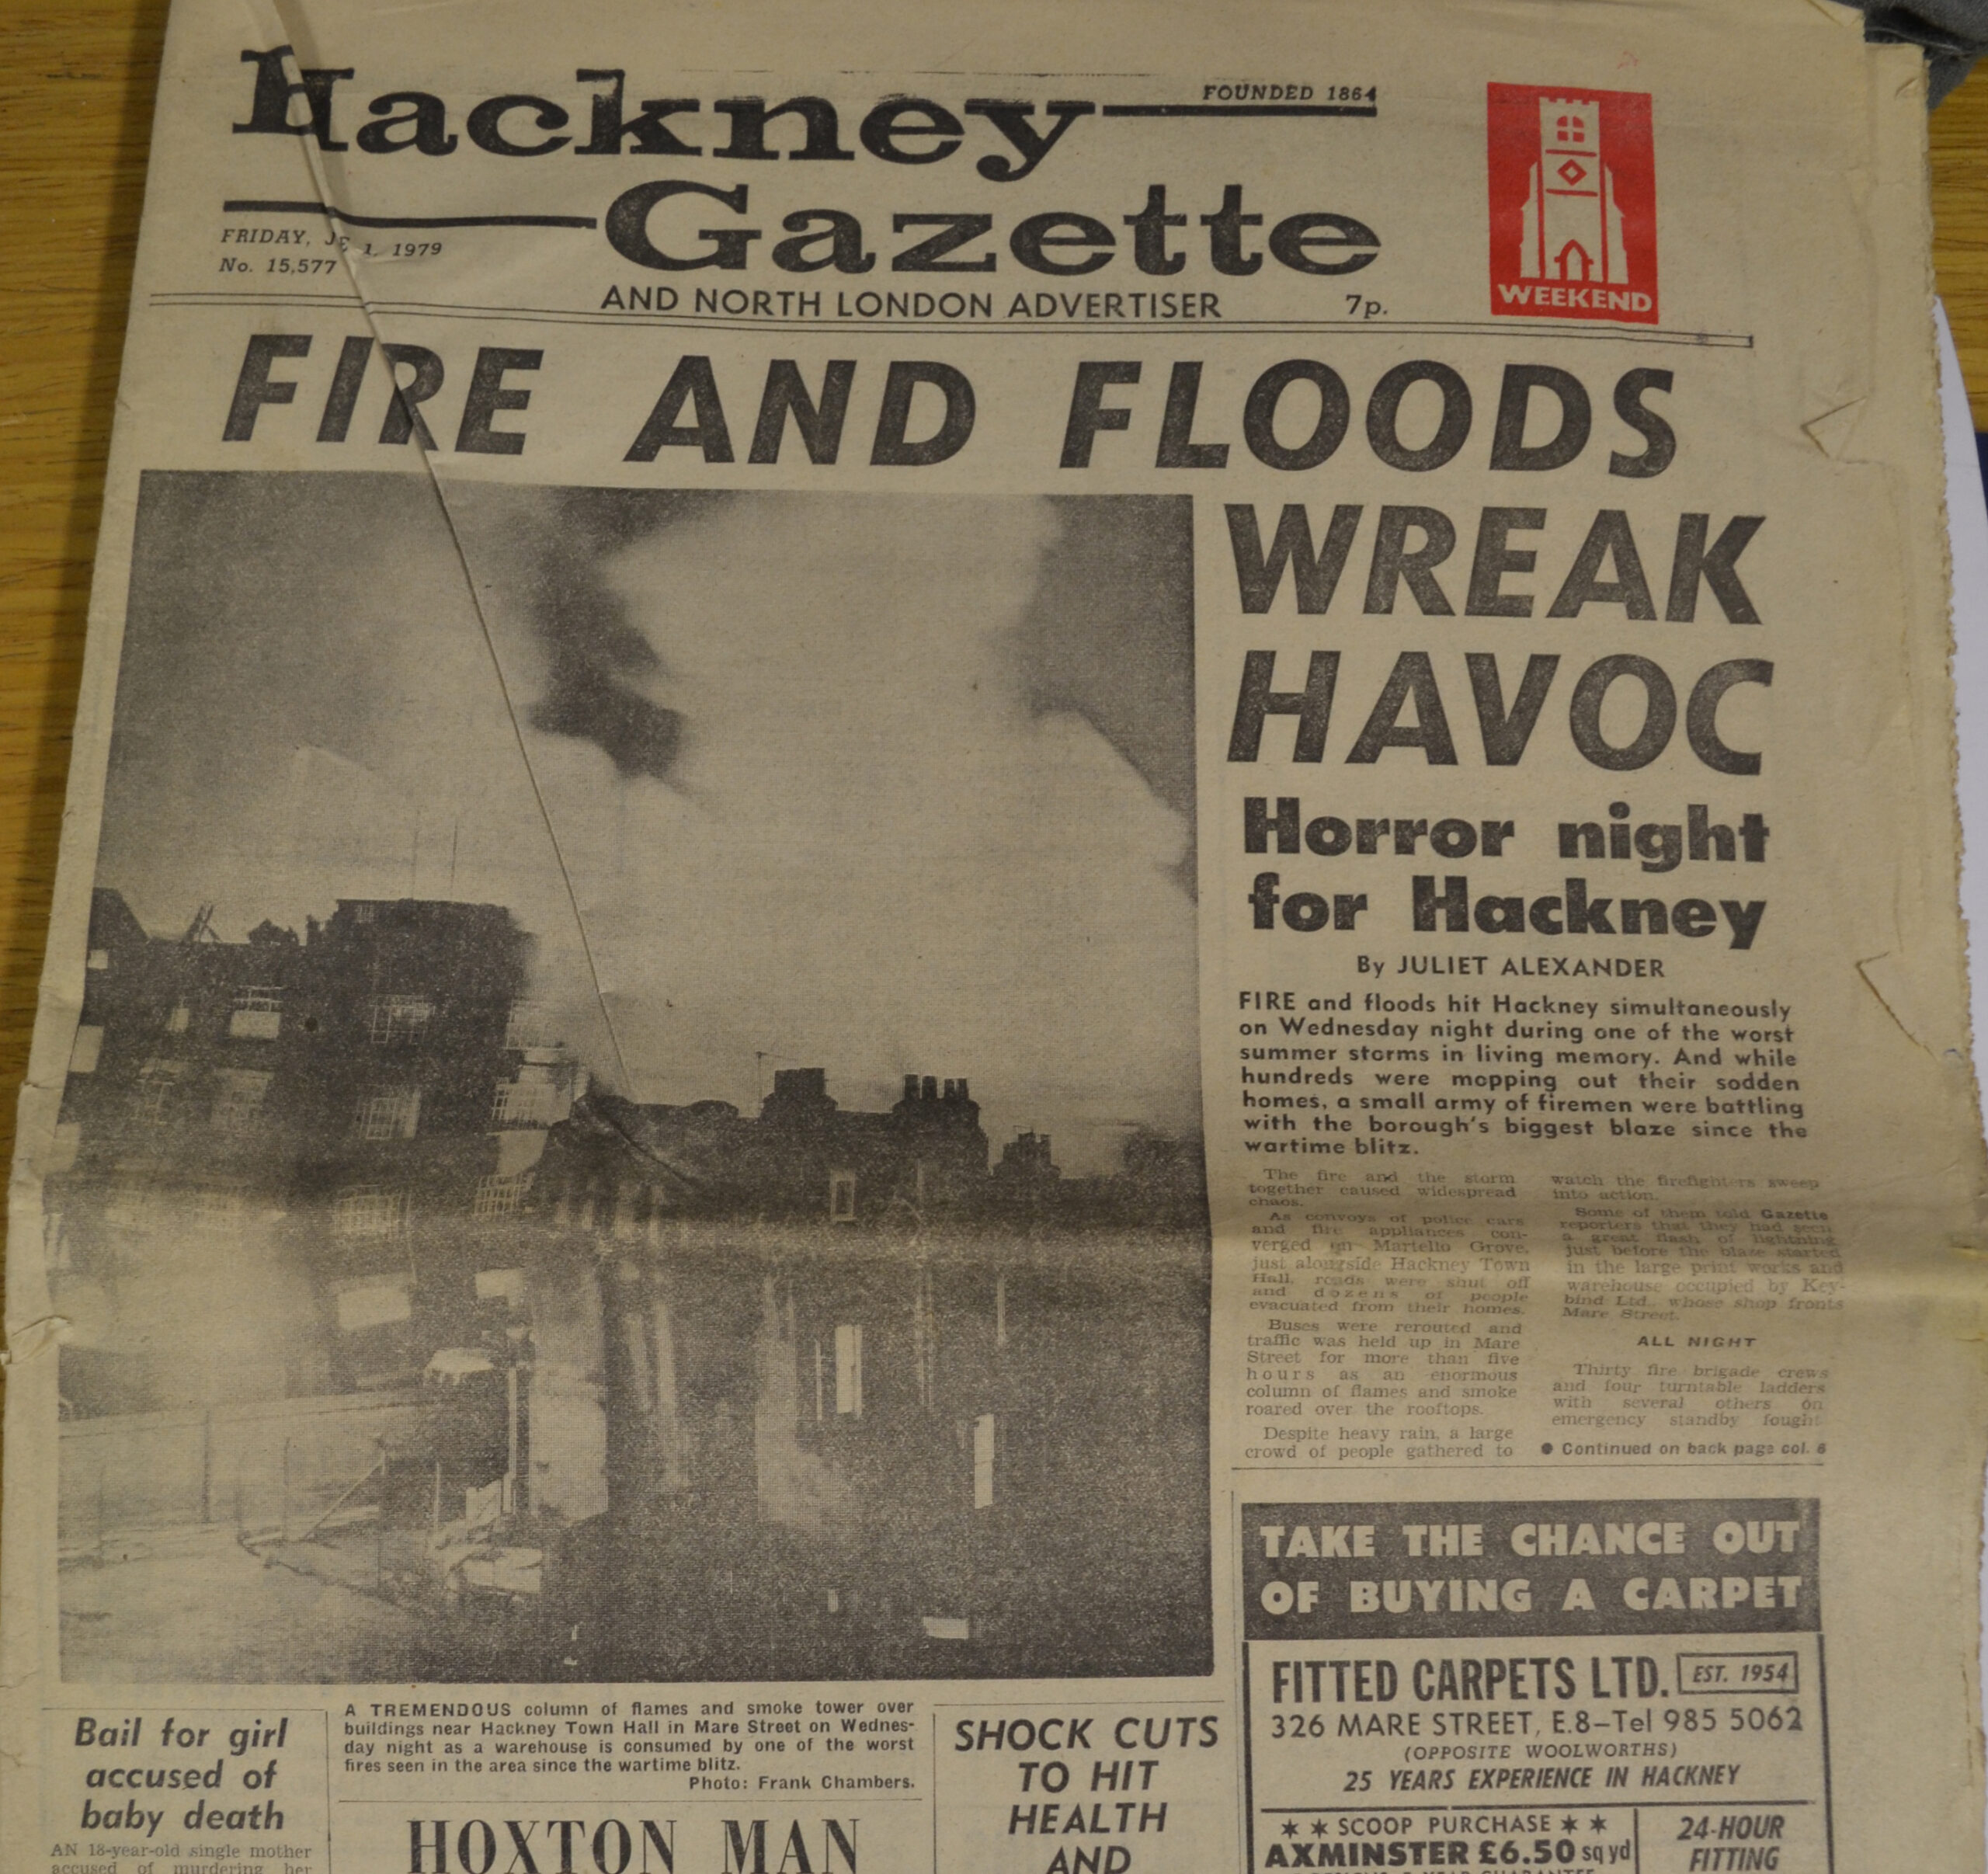 Photo of old Hackney Gazette